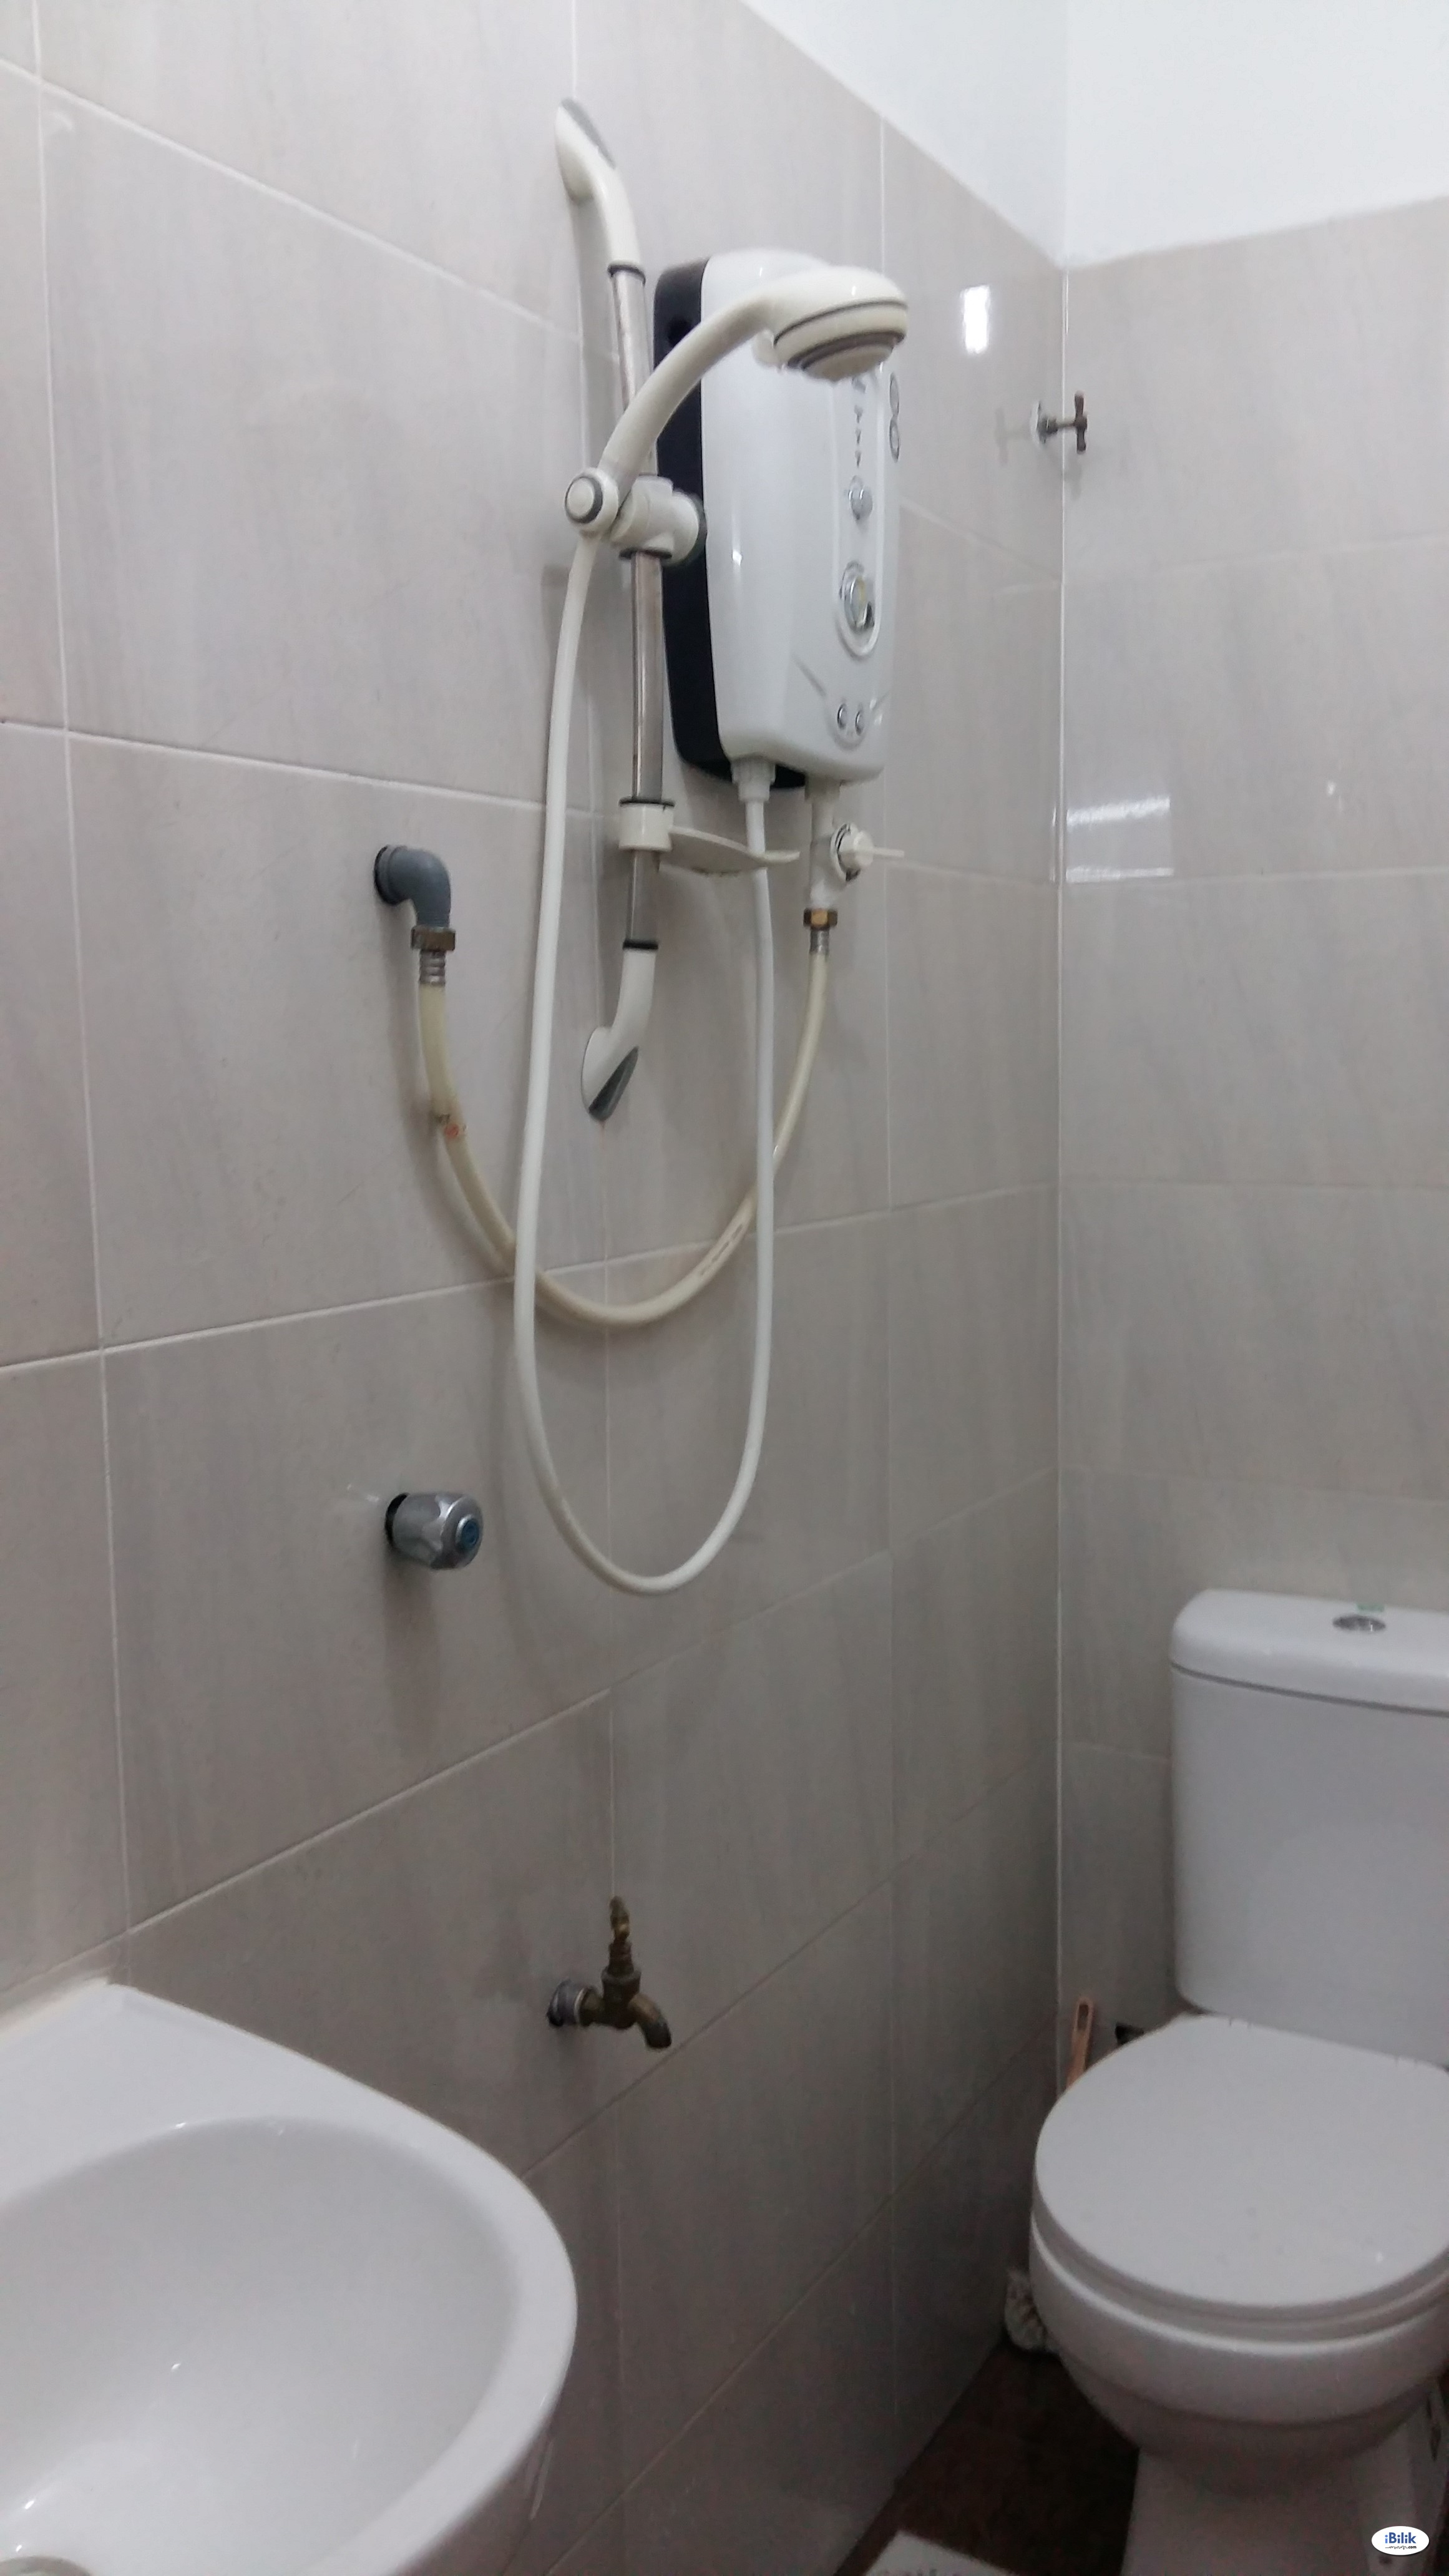 SS15 opp Subang Parade – fully furnished room with private bath